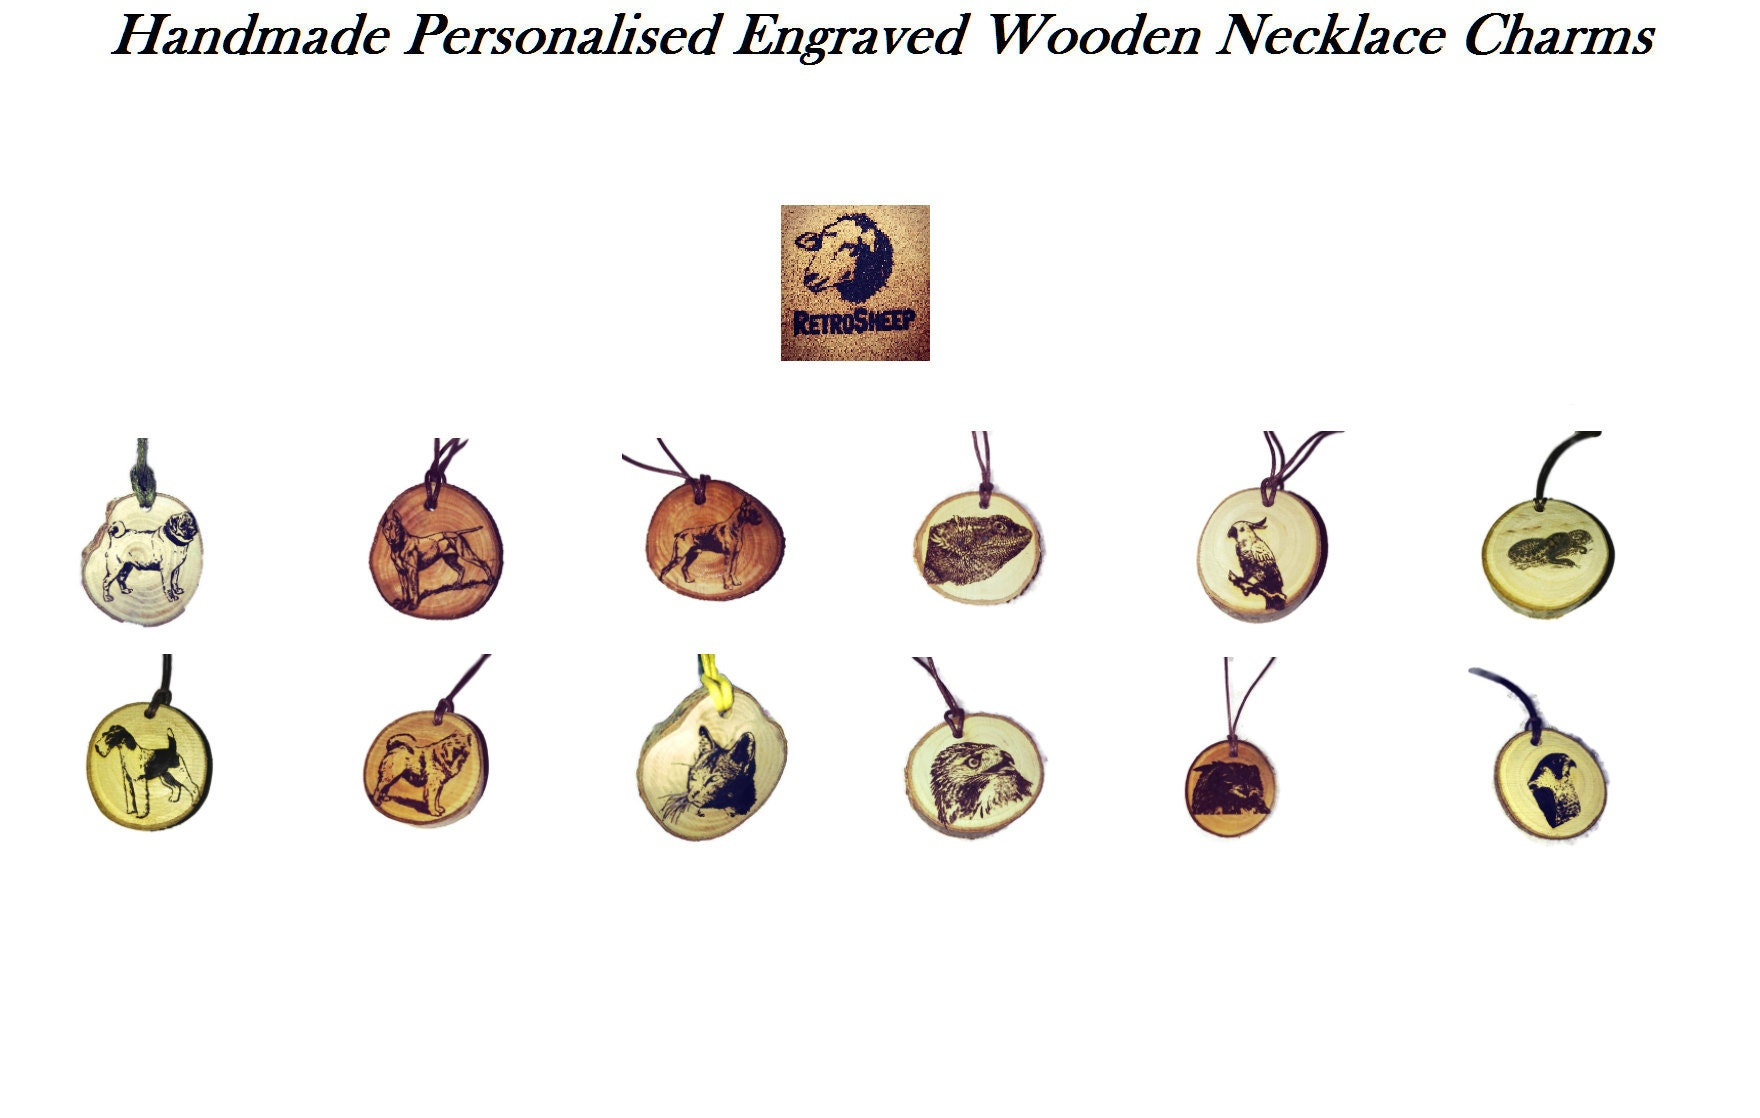 Animal Pet Dog Cat Bird Lizard  Handmade Personalised Engraved Wooden Necklace Charms